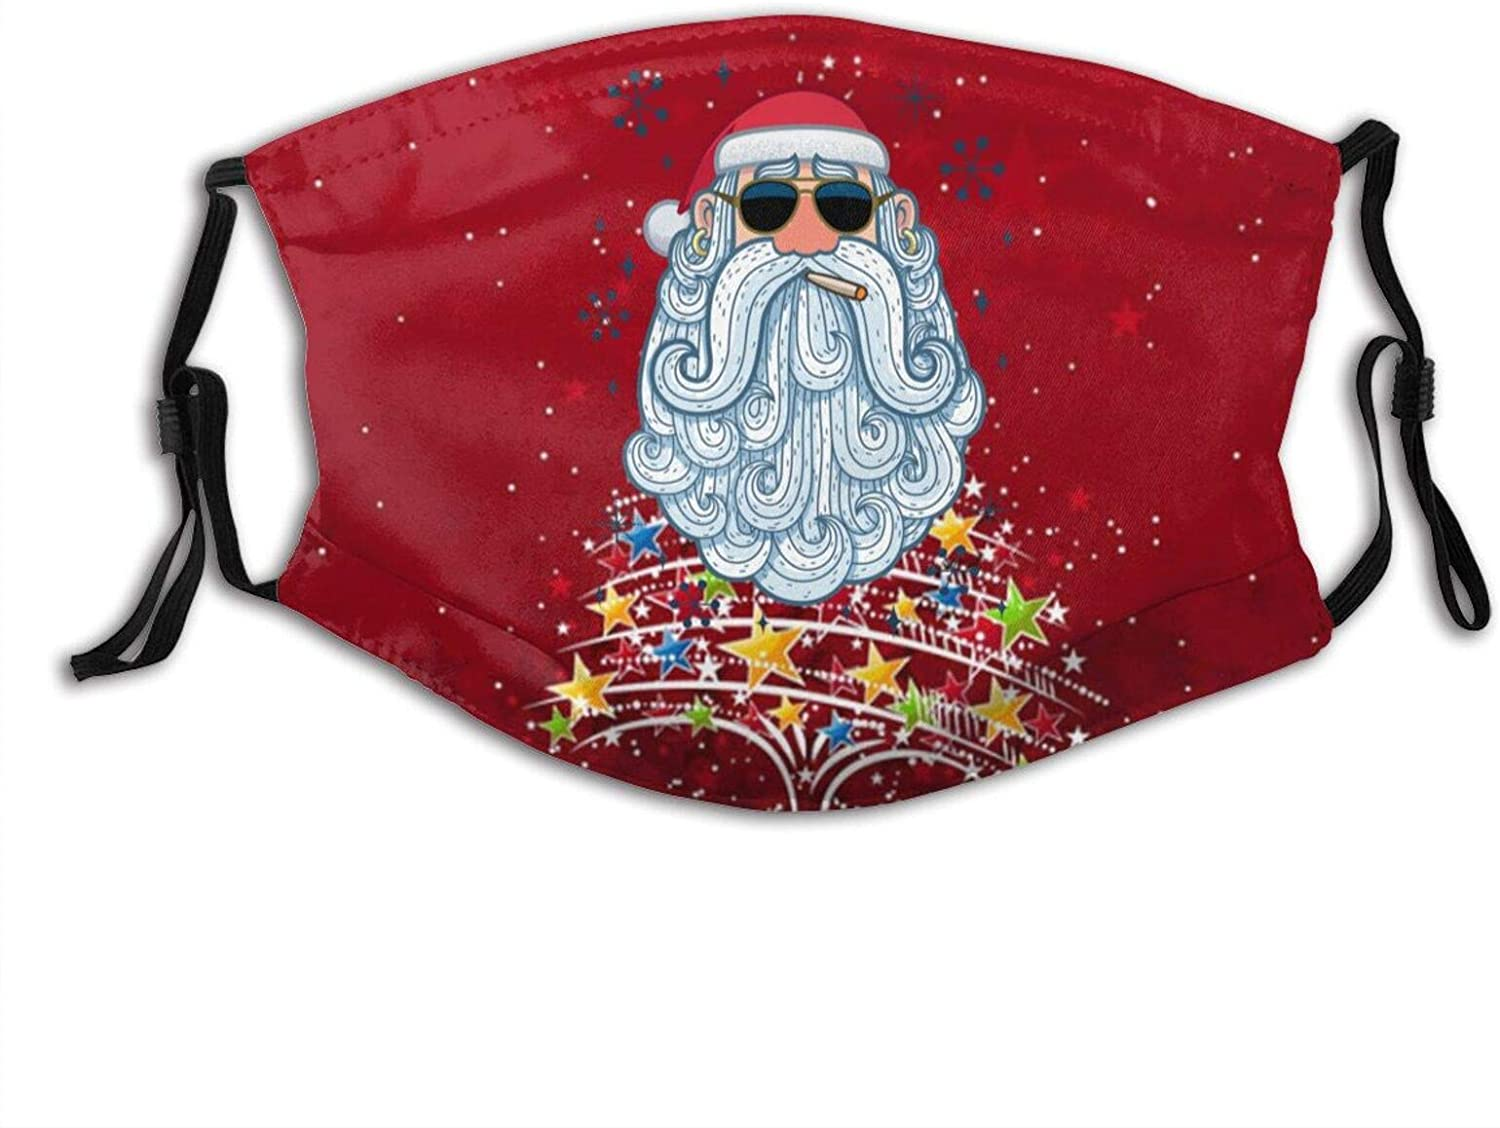 Red Santa Claus Flower Print Mask Breathable Reusable with 2 Filter for Adult Women Men & Teenager Festival